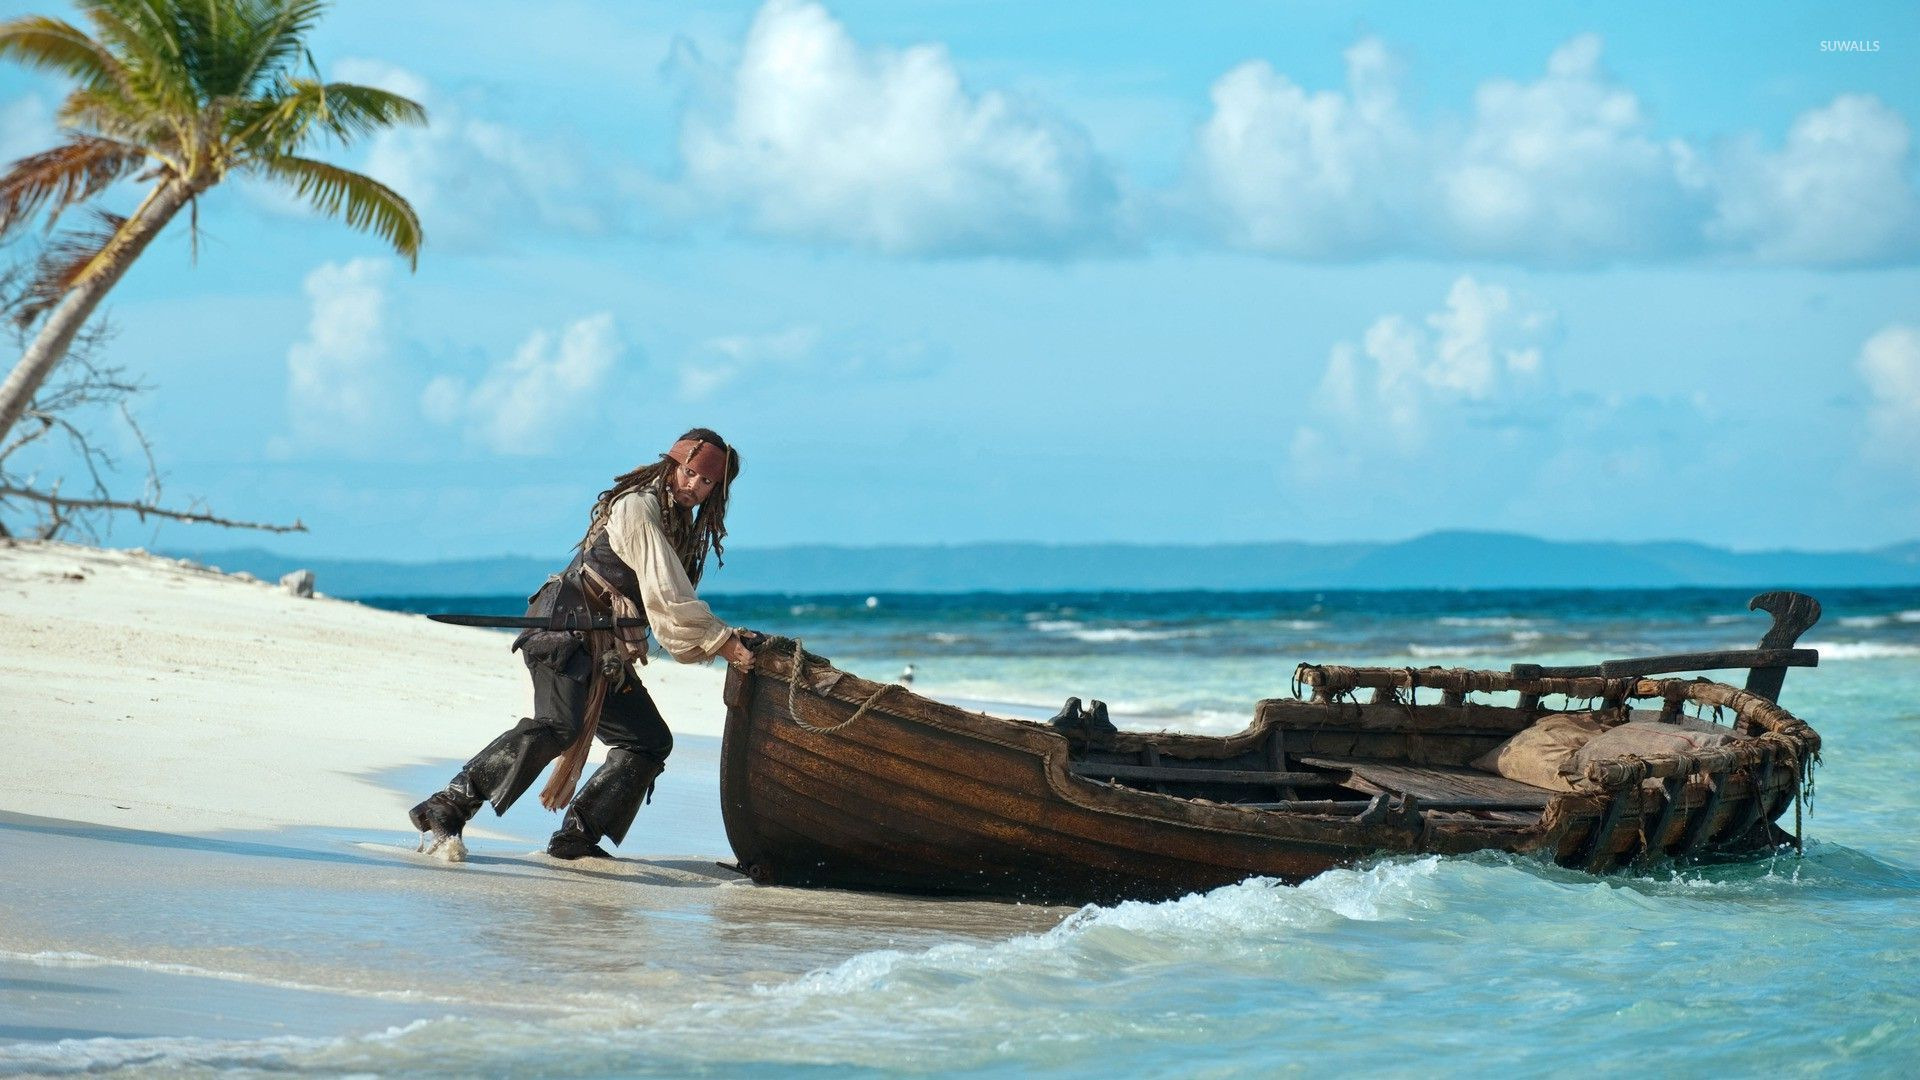 Captain Jack Sparrow The Pirates Of The Caribbean 3 Wallpaper